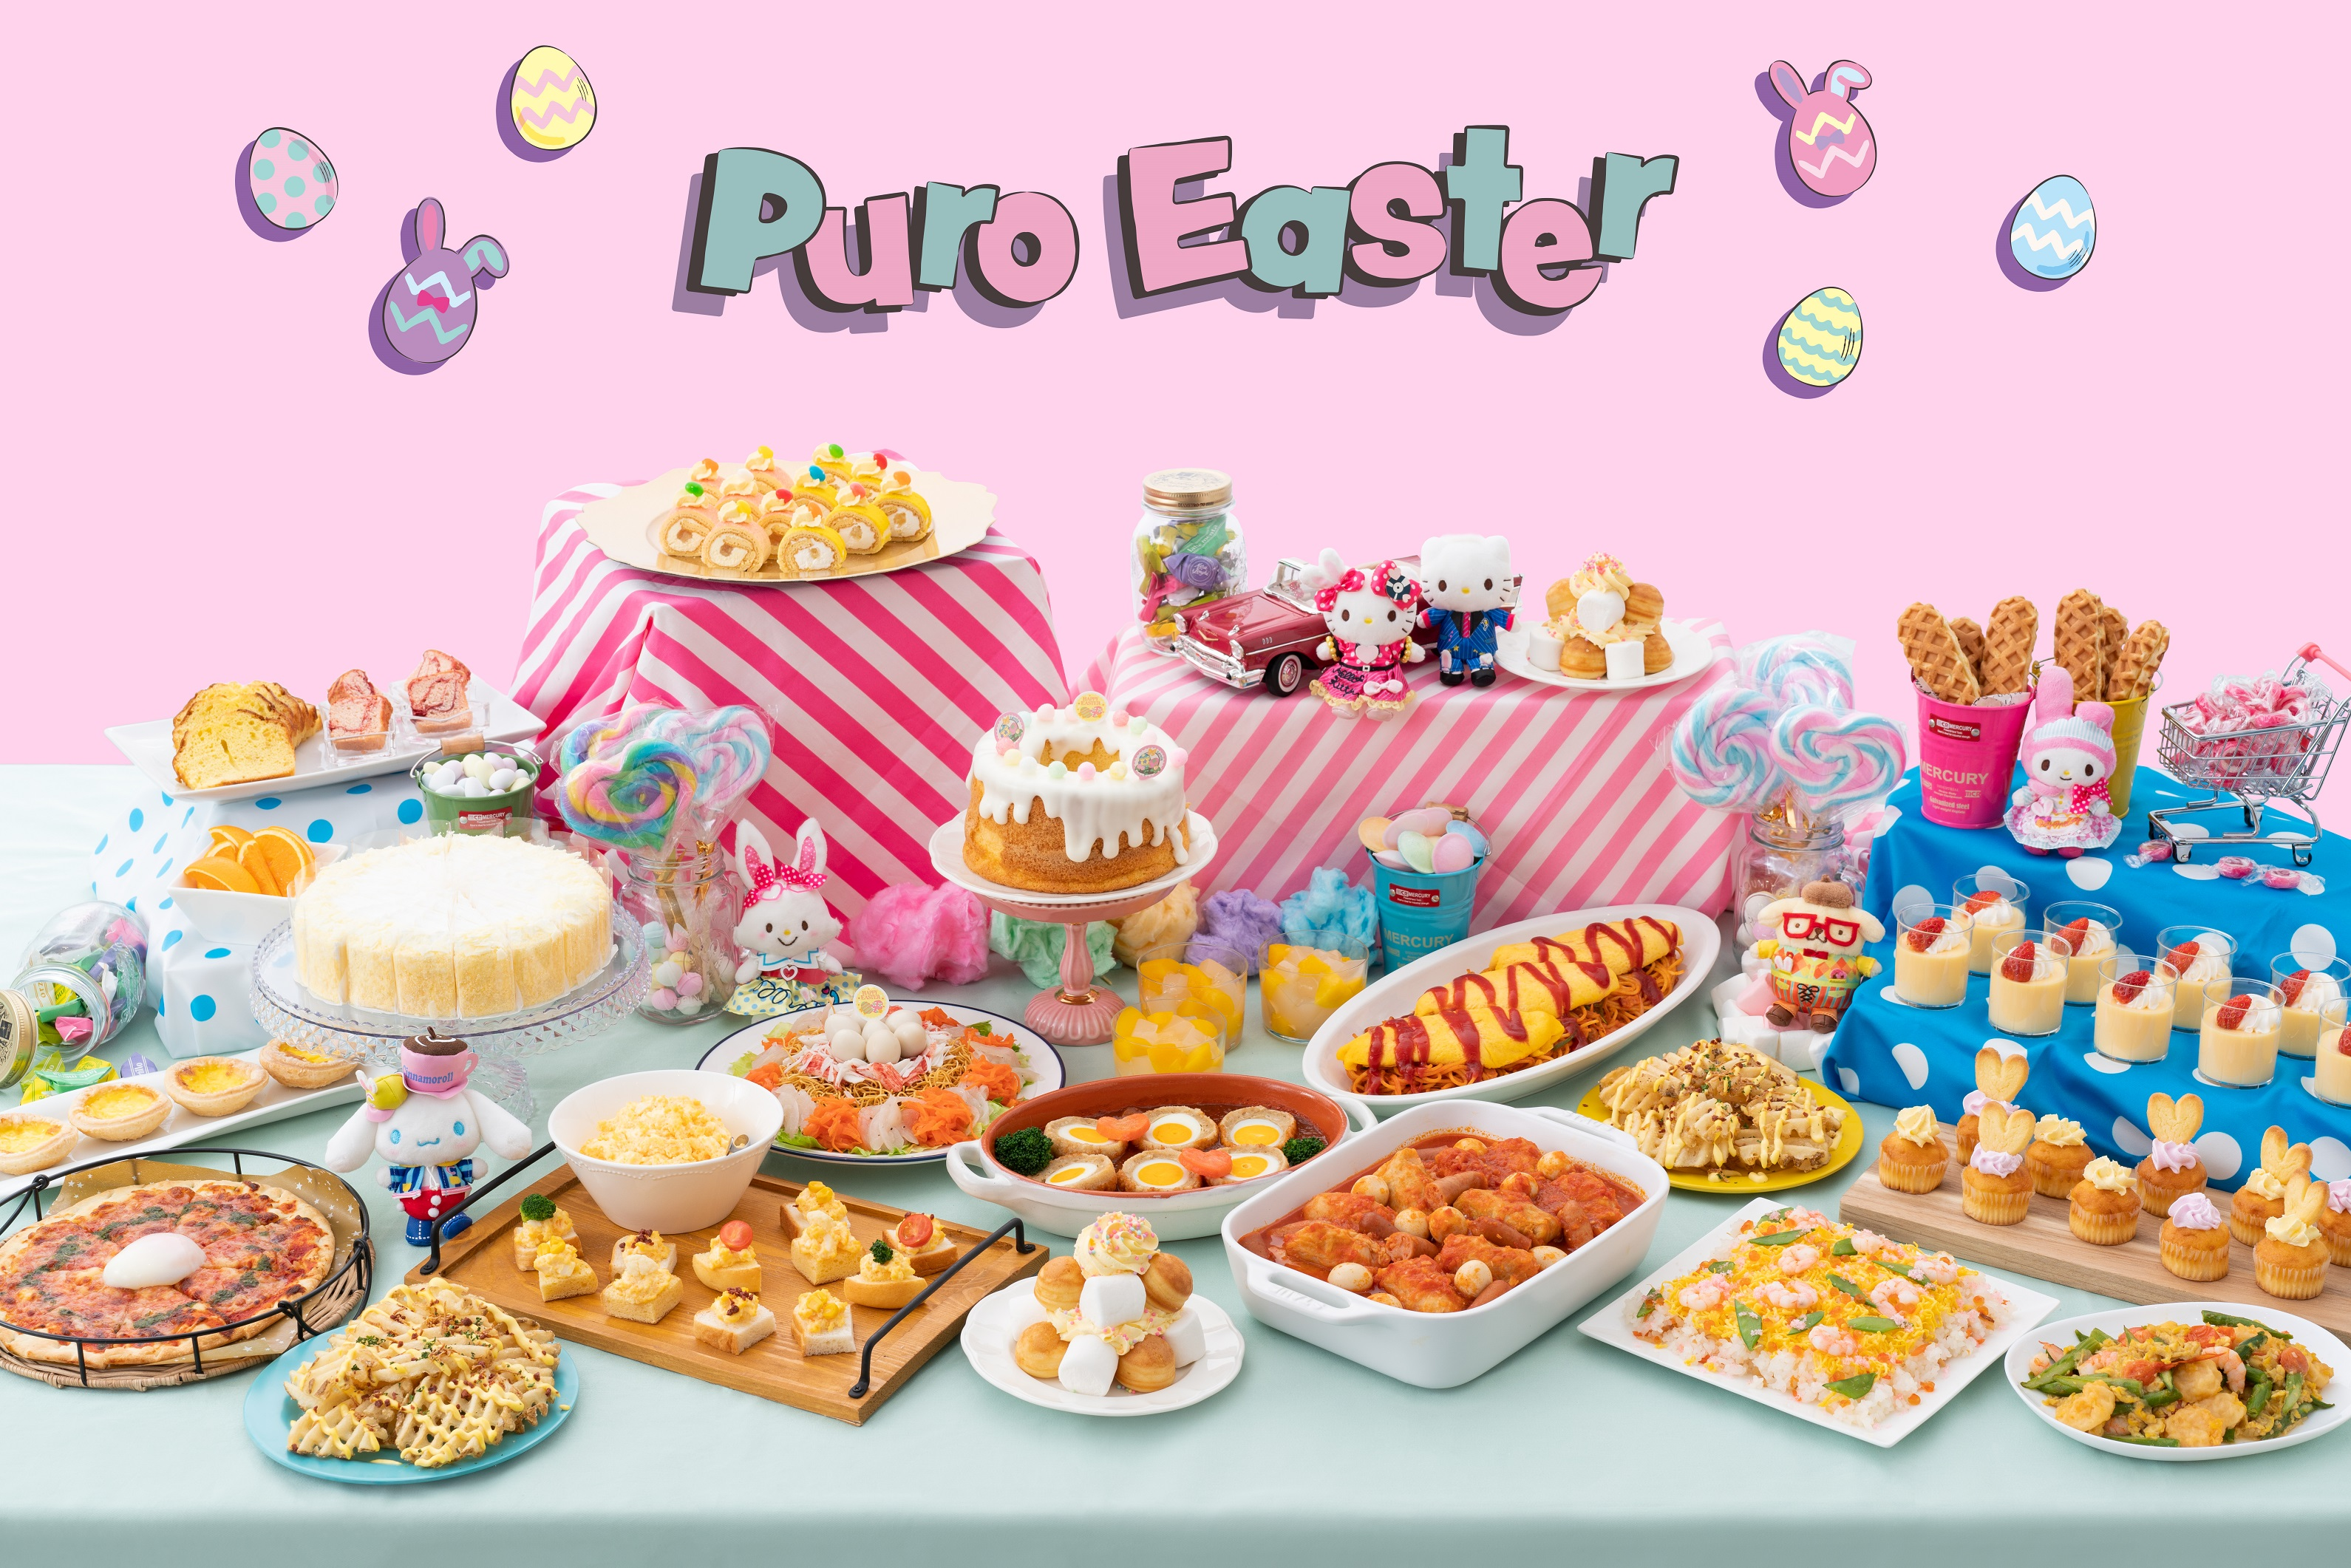 puro-easter-5